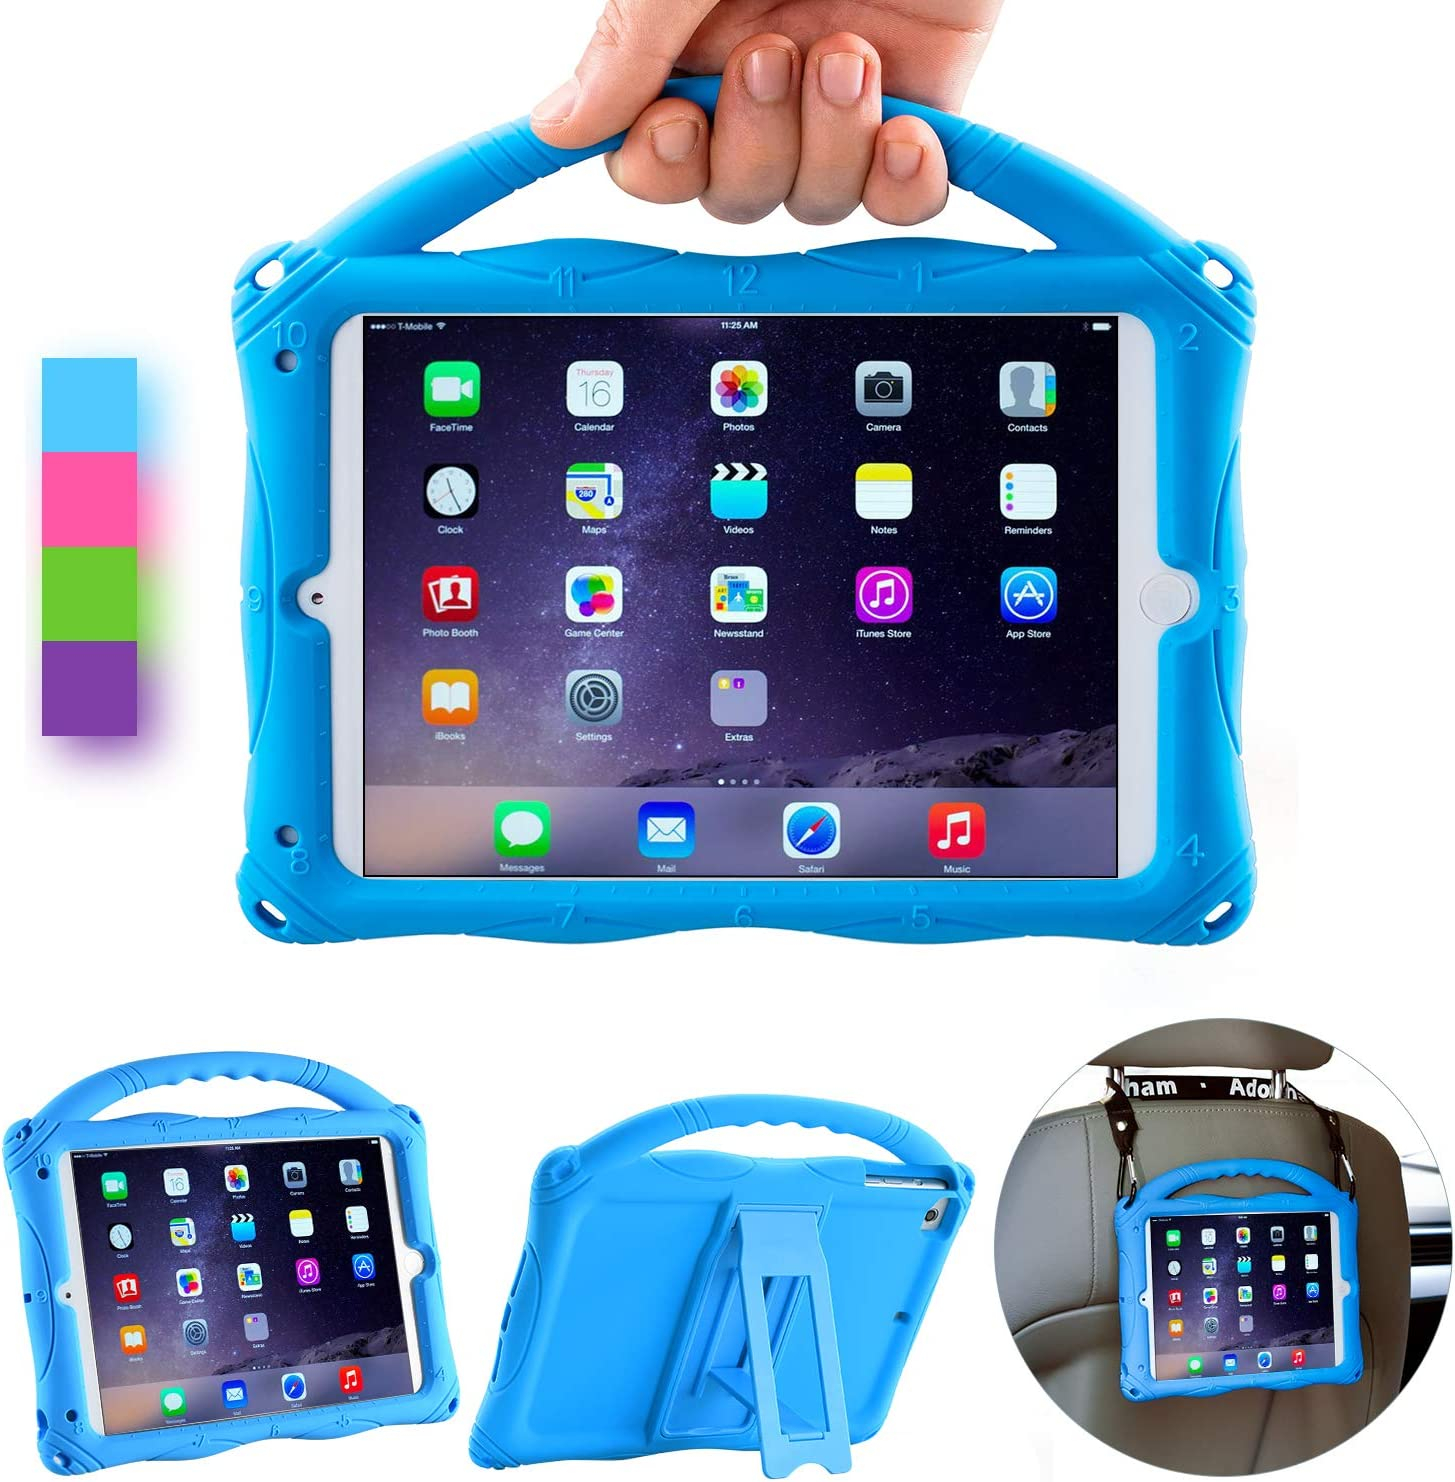 Adocham Kids Case for iPad Mini 5 4 3 2 1, Lightweight and Full-Body Shockproof Silicone Case Cover with Built-in Foldable Kickstand and Grip Handle (Blue-1)